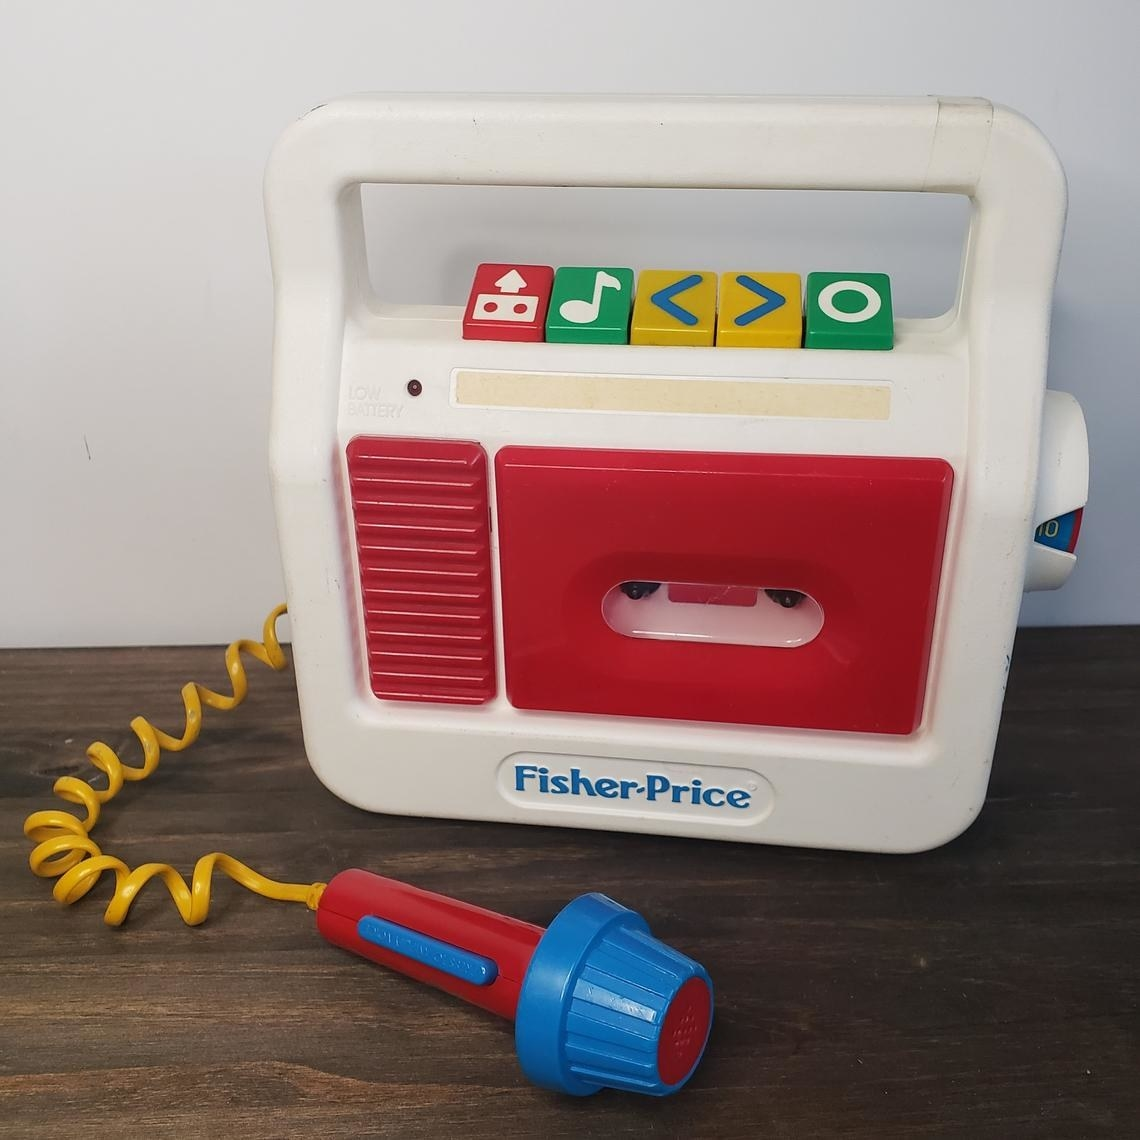 Fisher-Price tape player that comes in red and white and with a red and blue microphone.